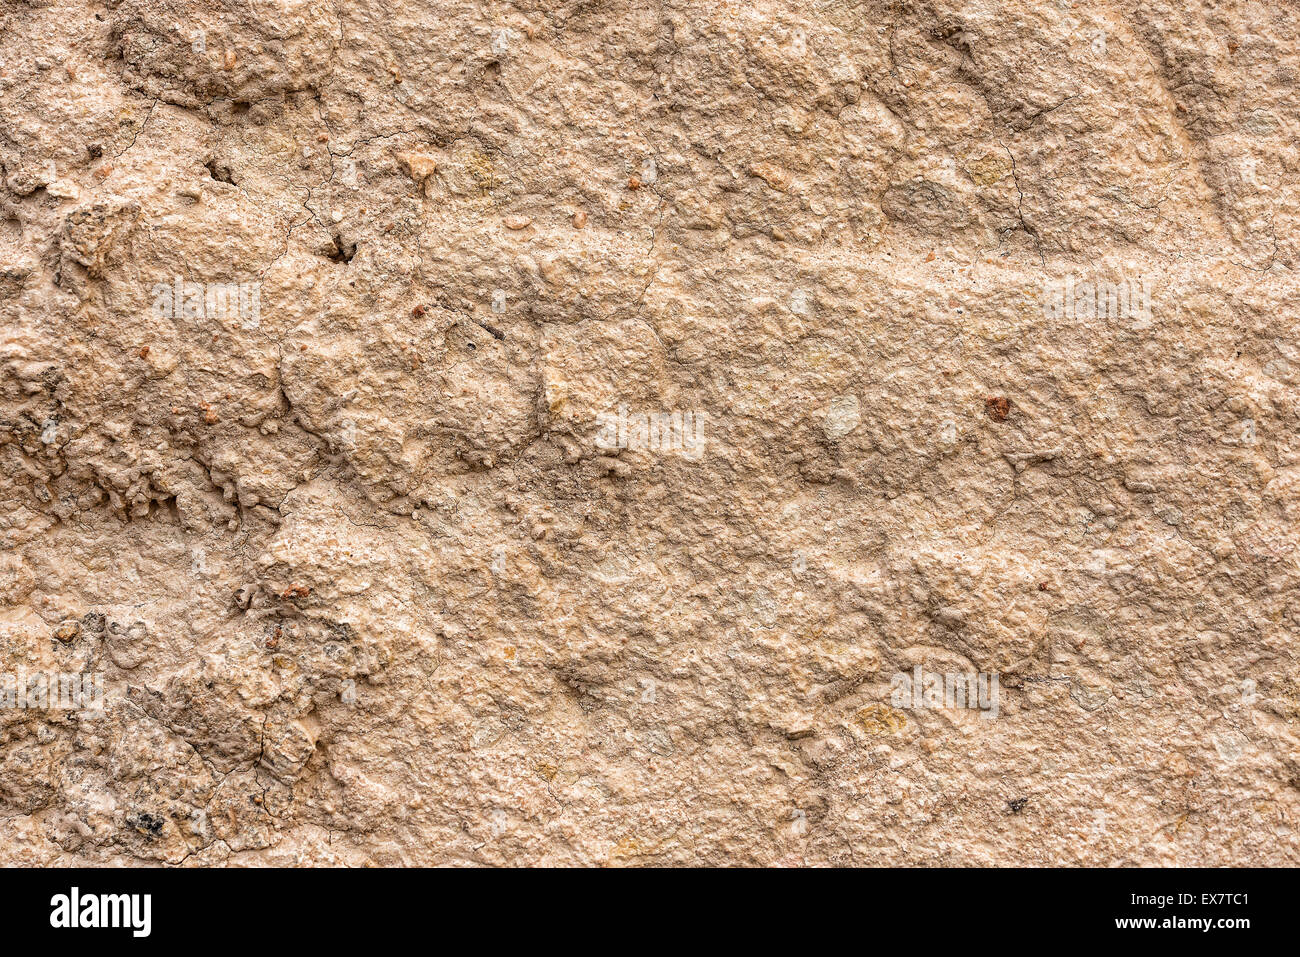 Mud texture - Stock Image